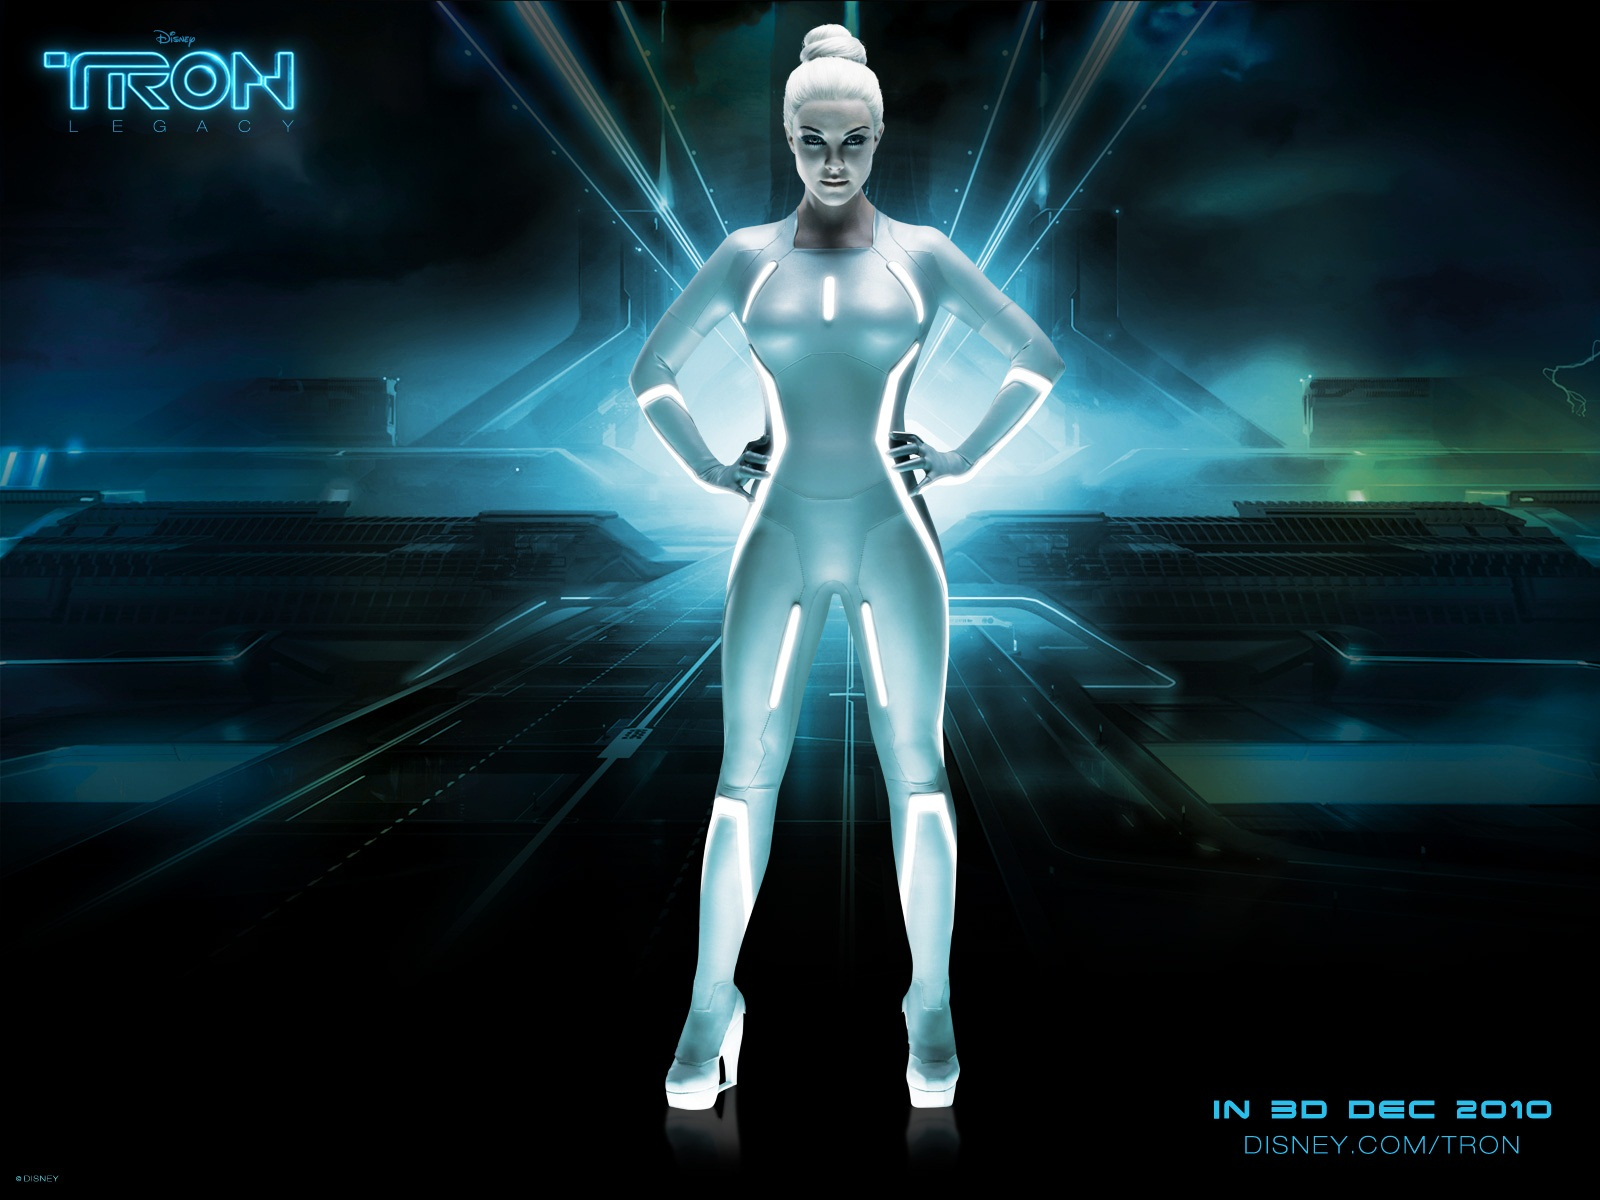 tron legacy live wallpaper